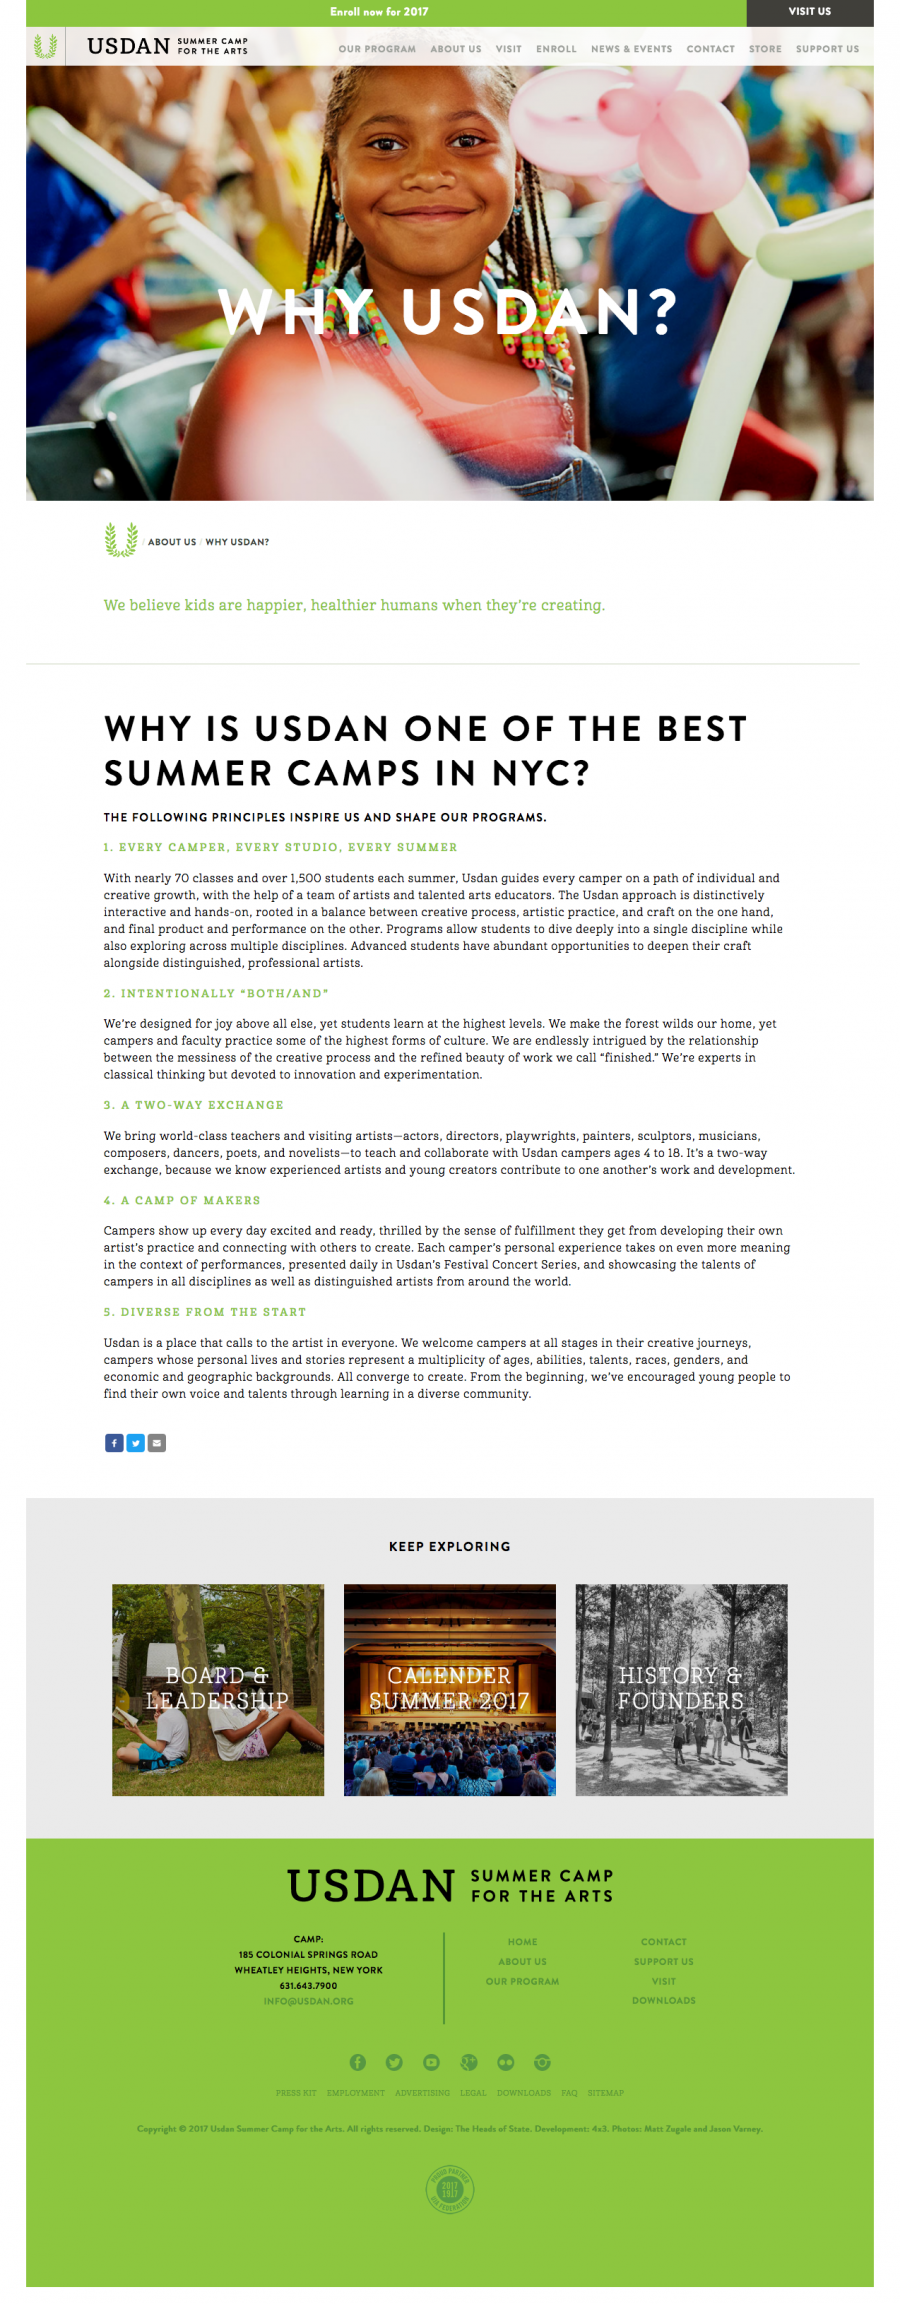 Usdan Landing Page, about the summer camp / frequently asked questions